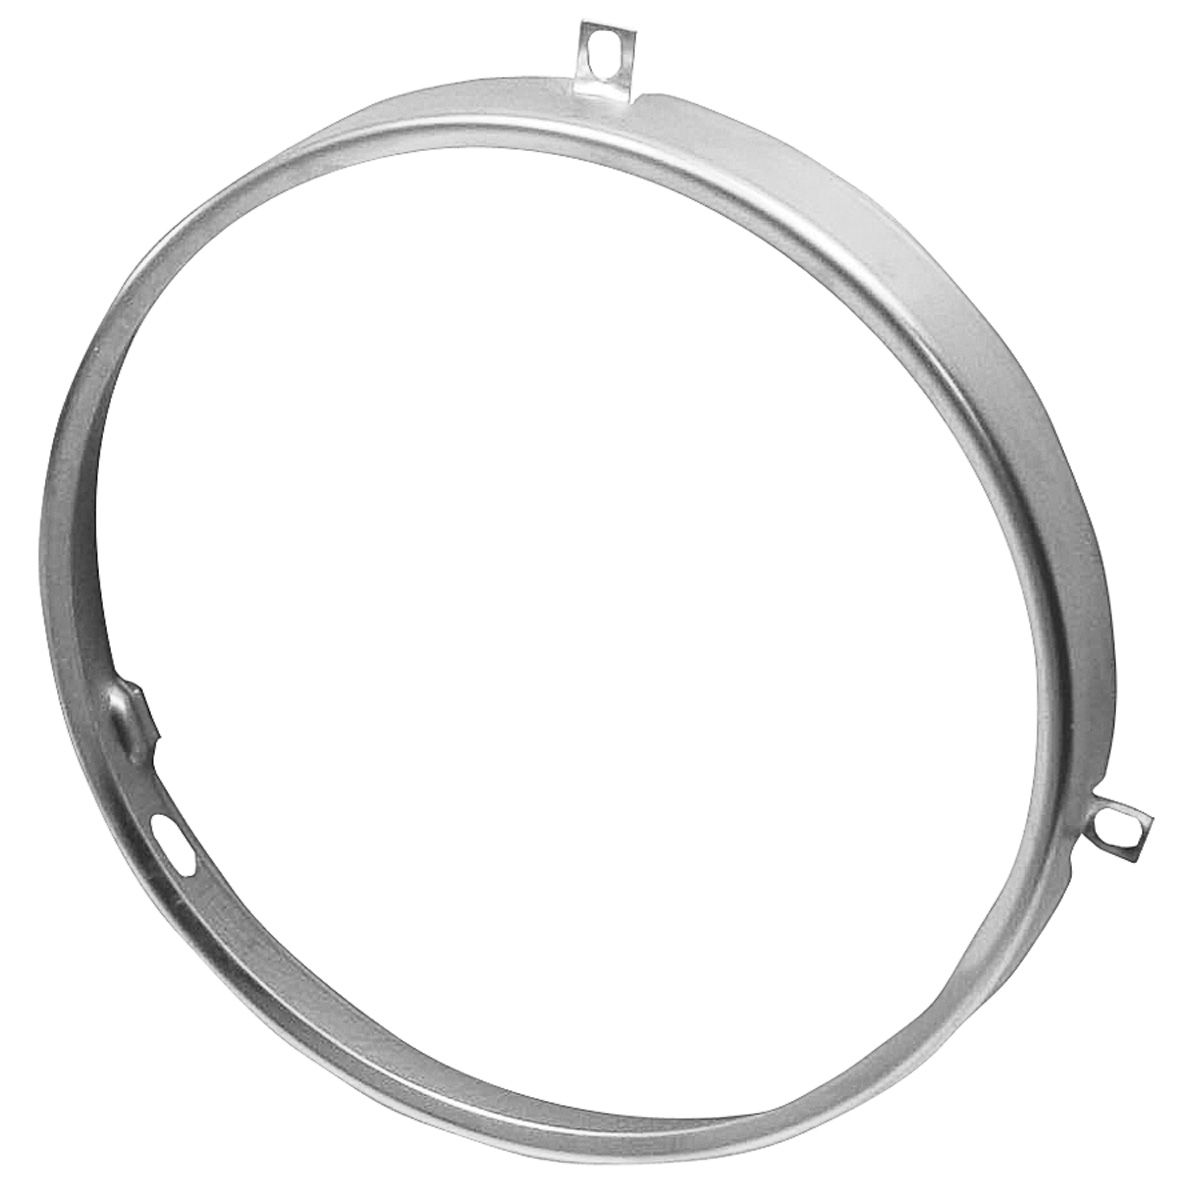 restoparts 1964 1970 chevelle headlight retaining ring opgi 1970 Chevelle SS 454 1964 1970 chevelle headlight retaining ring